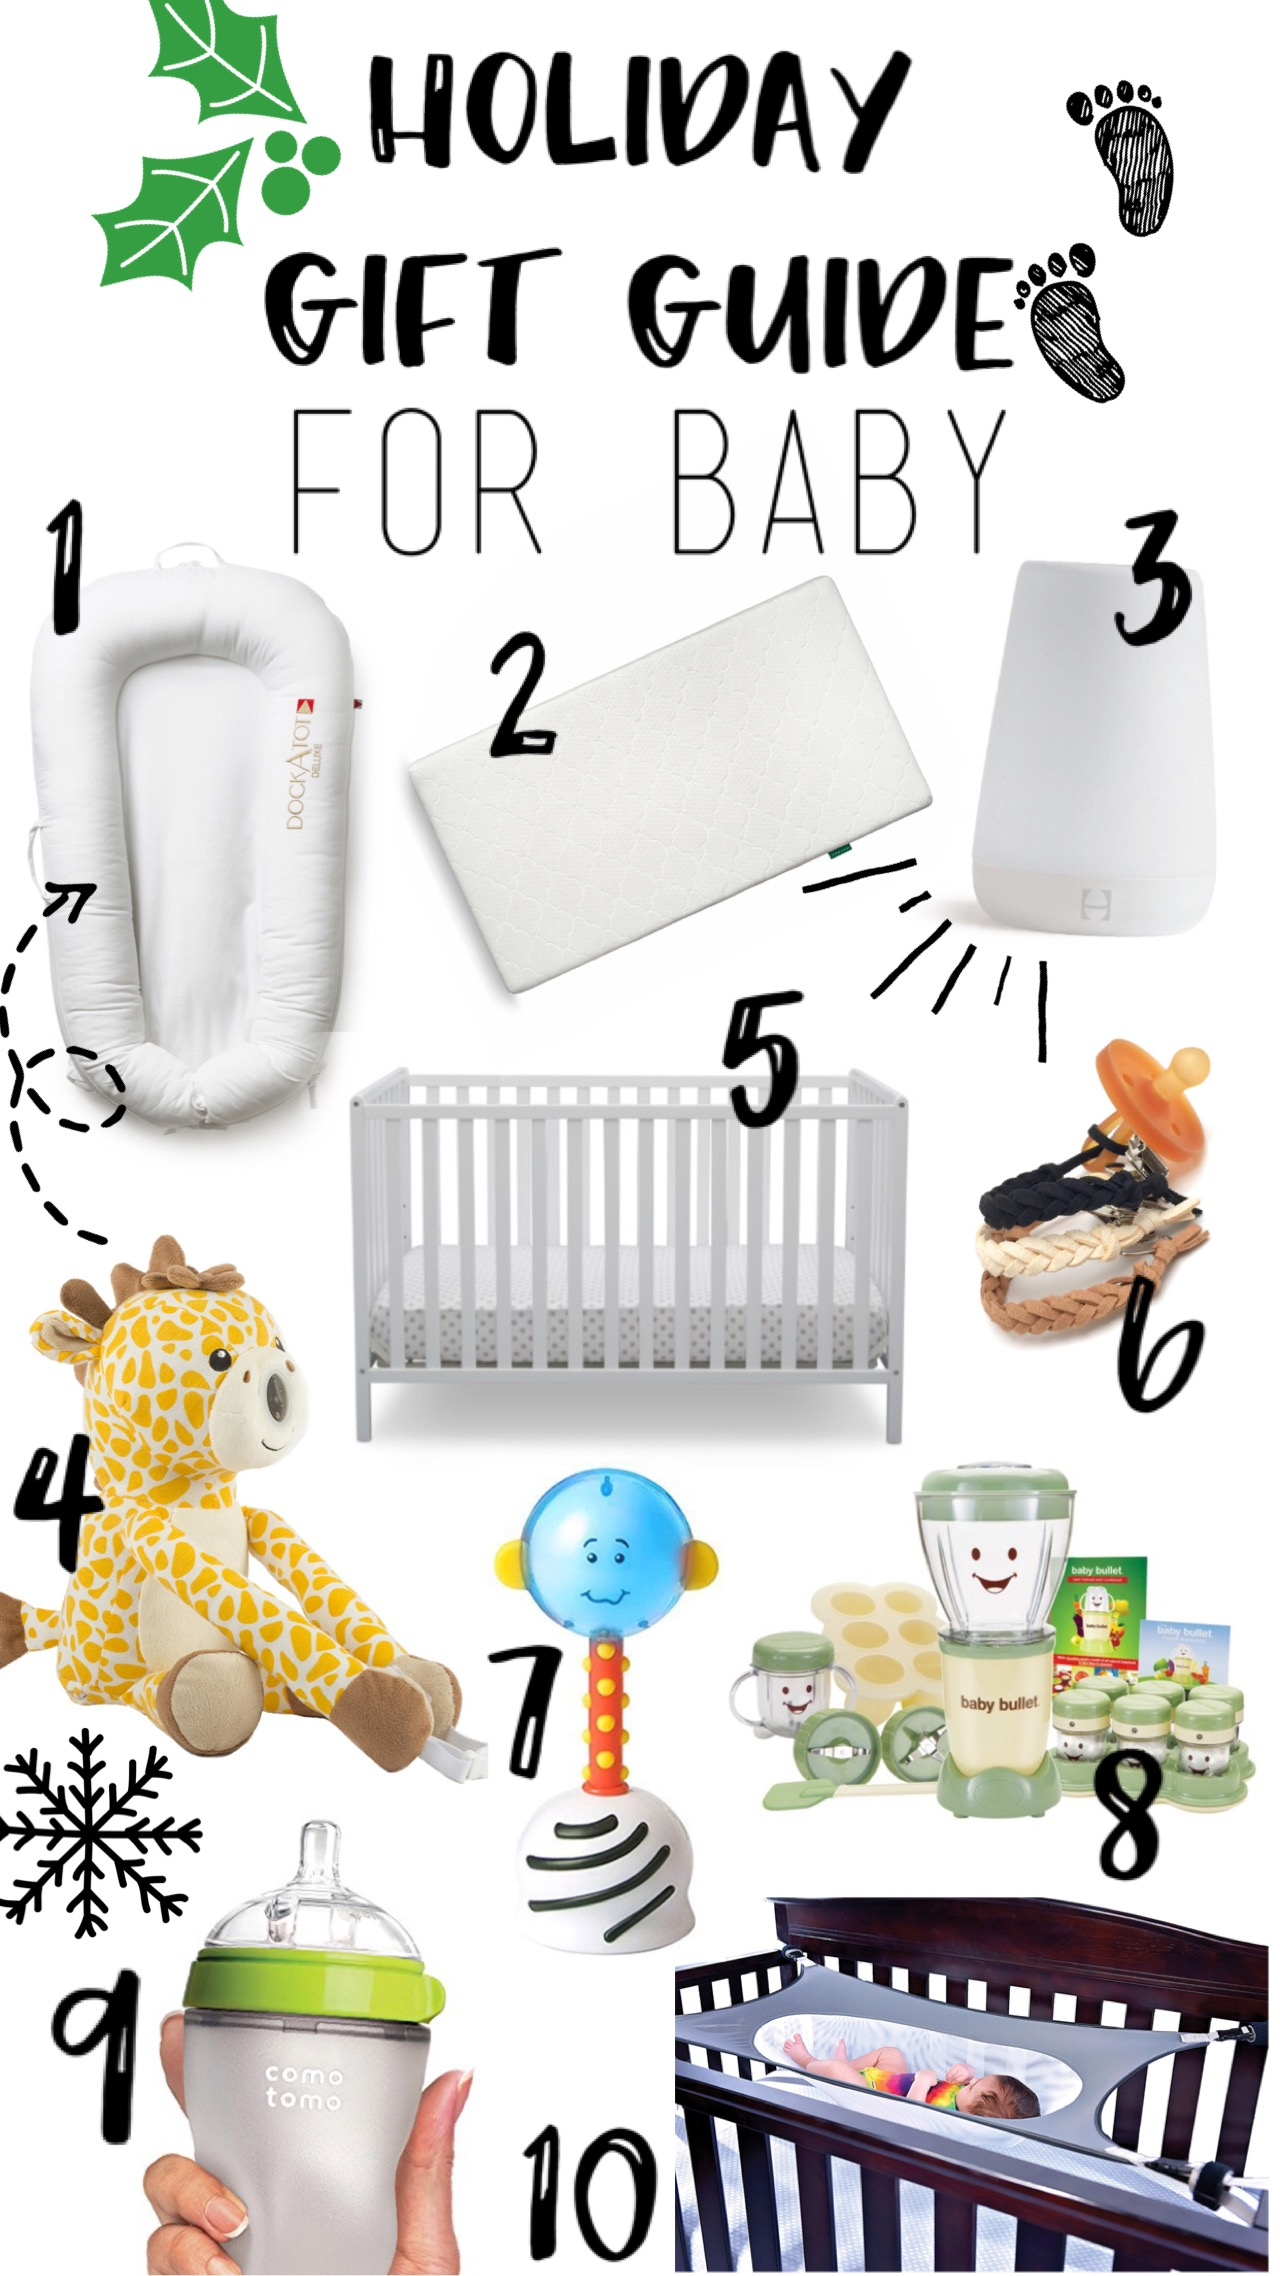 Holiday Gift Guide For Baby 2017 - Great list of items perfect for Baby's First Year